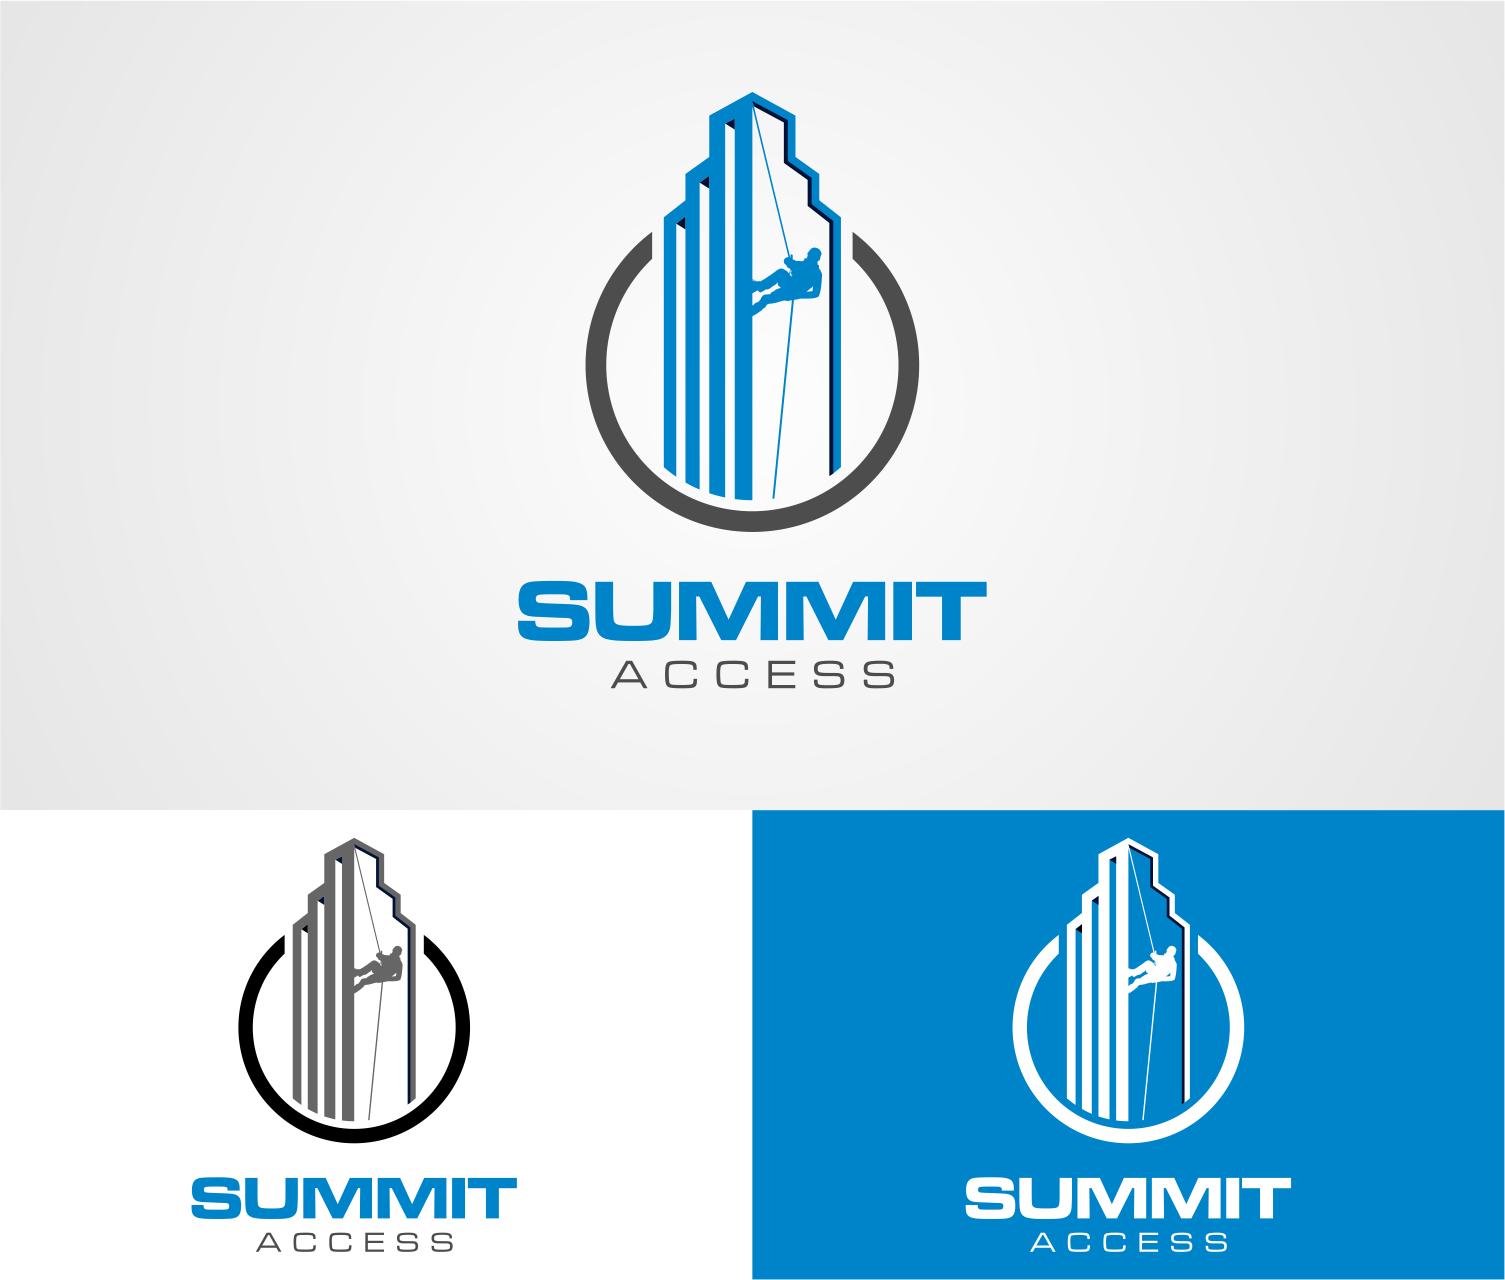 New logo wanted for Summit Access